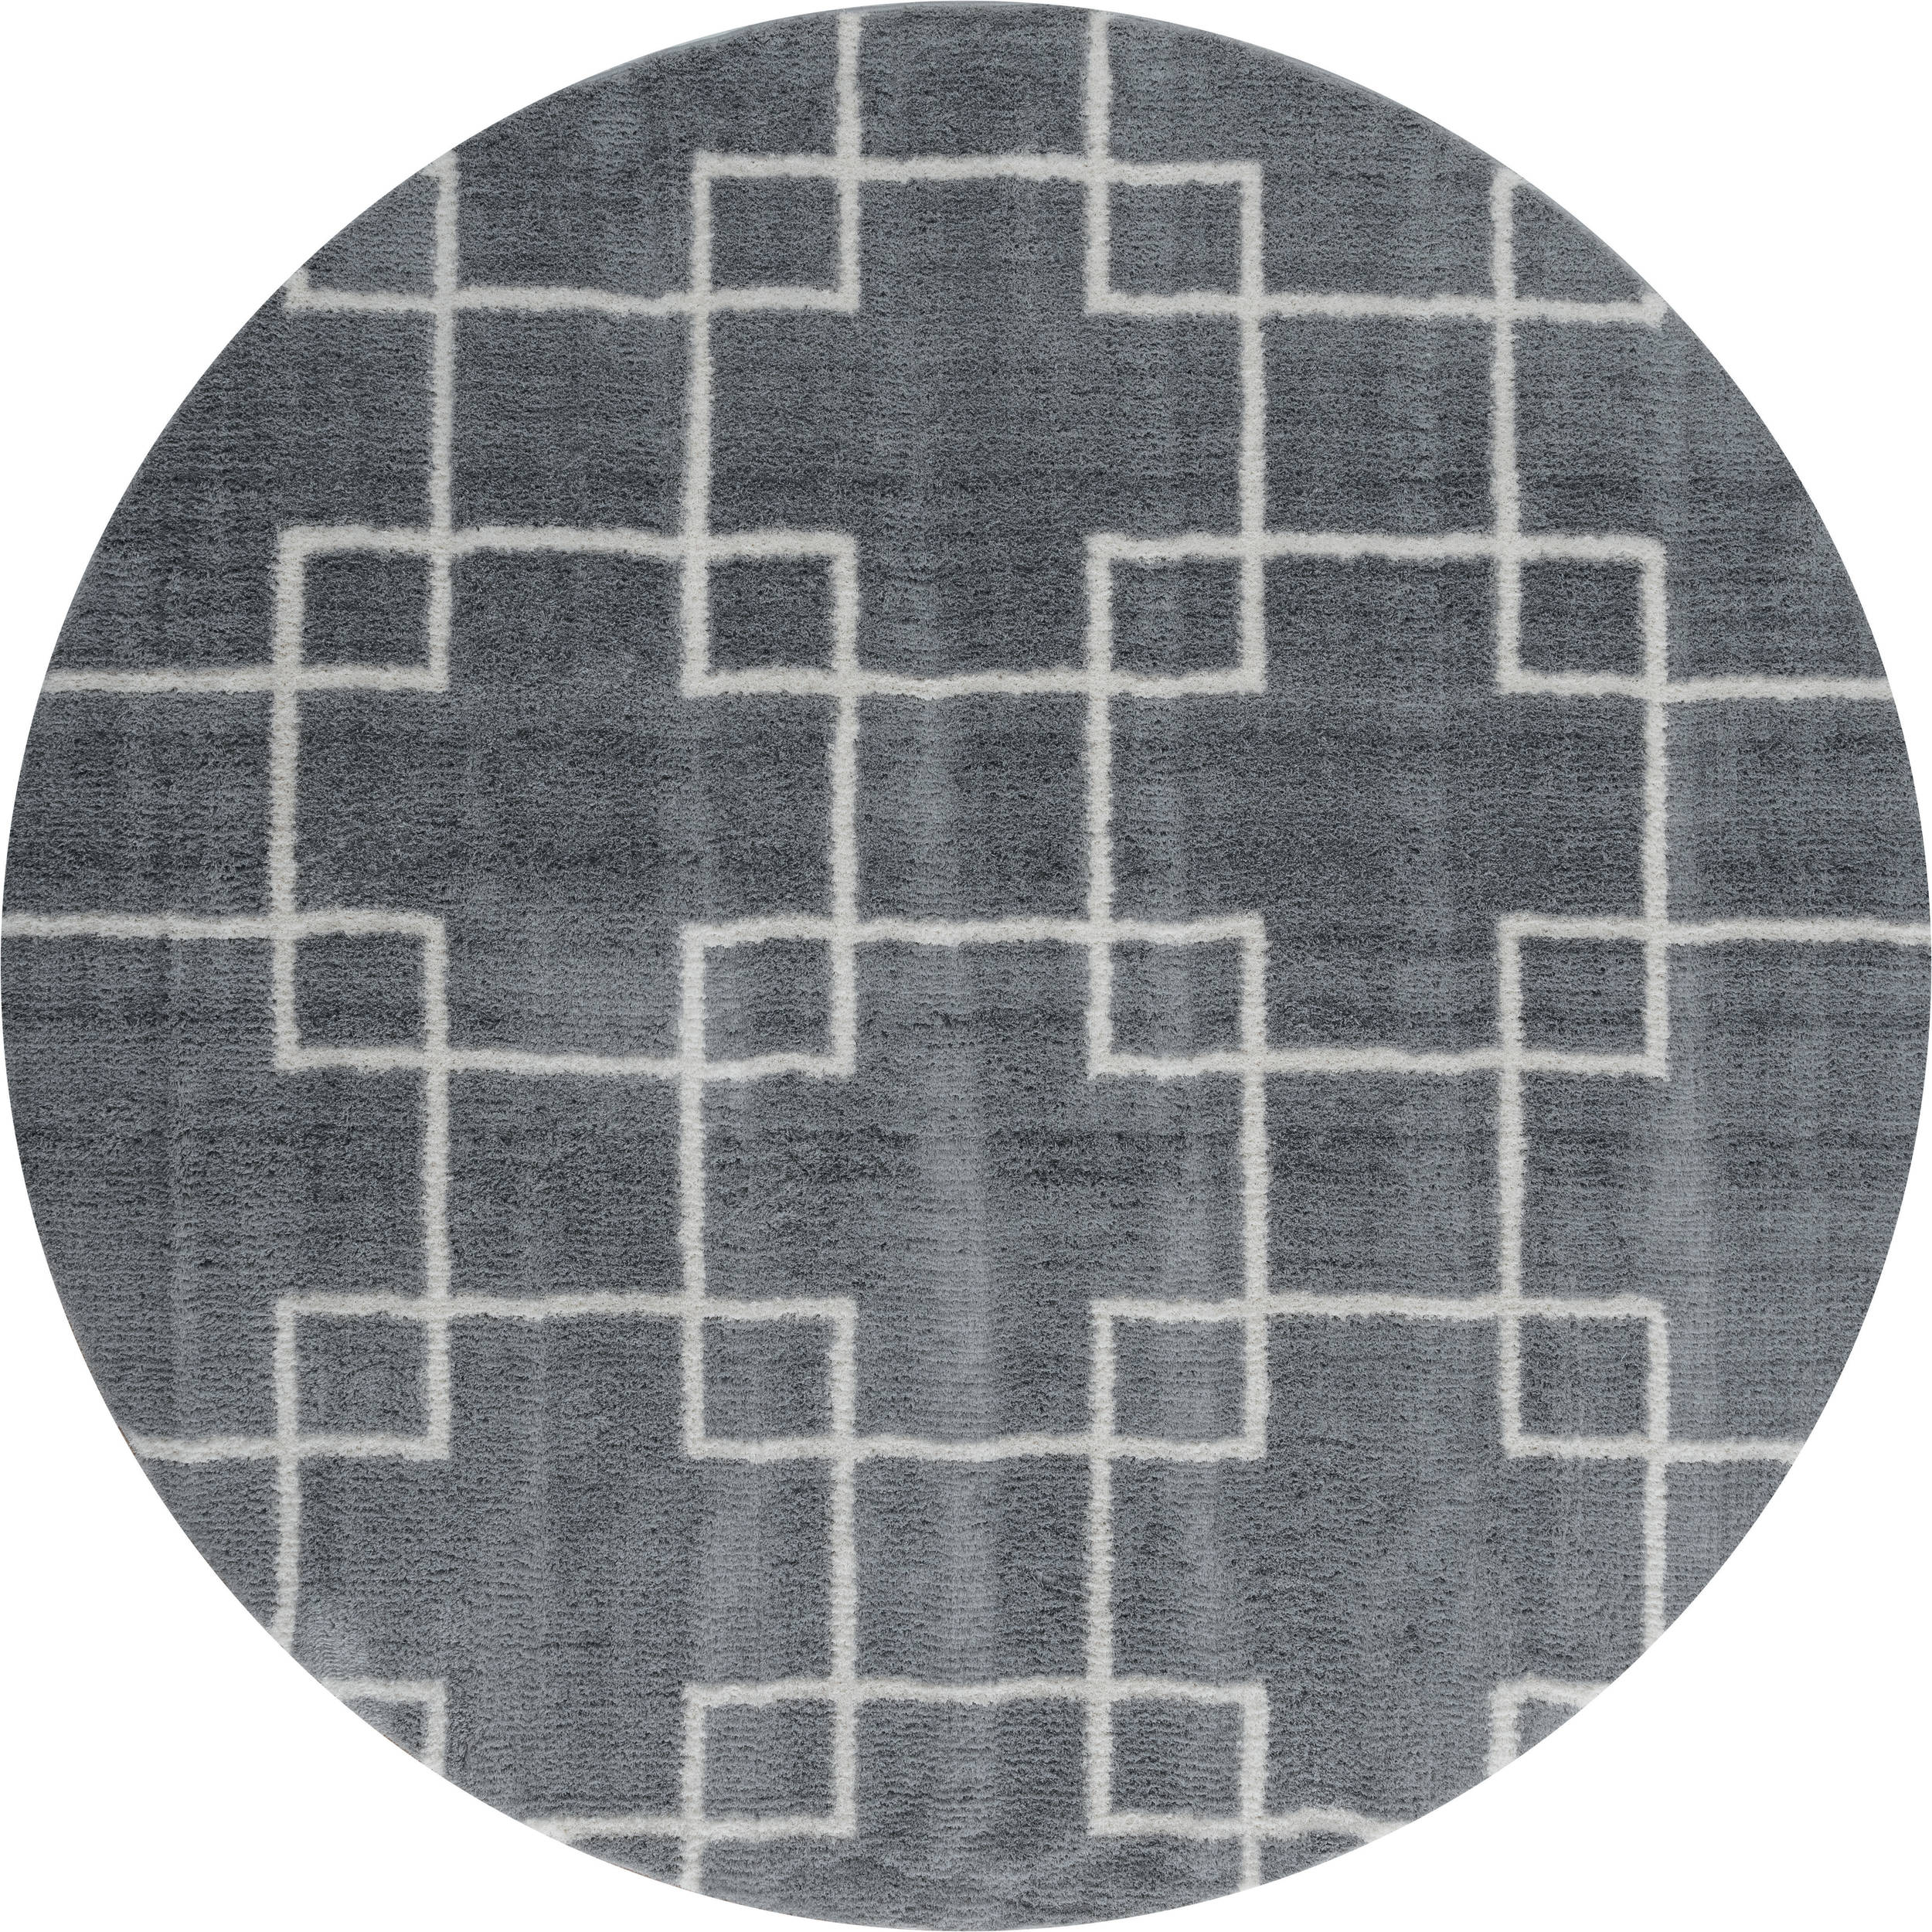 United Weavers Tranquility Grey Round 7 To 8 Ft Carpet 125230 Sku 125230